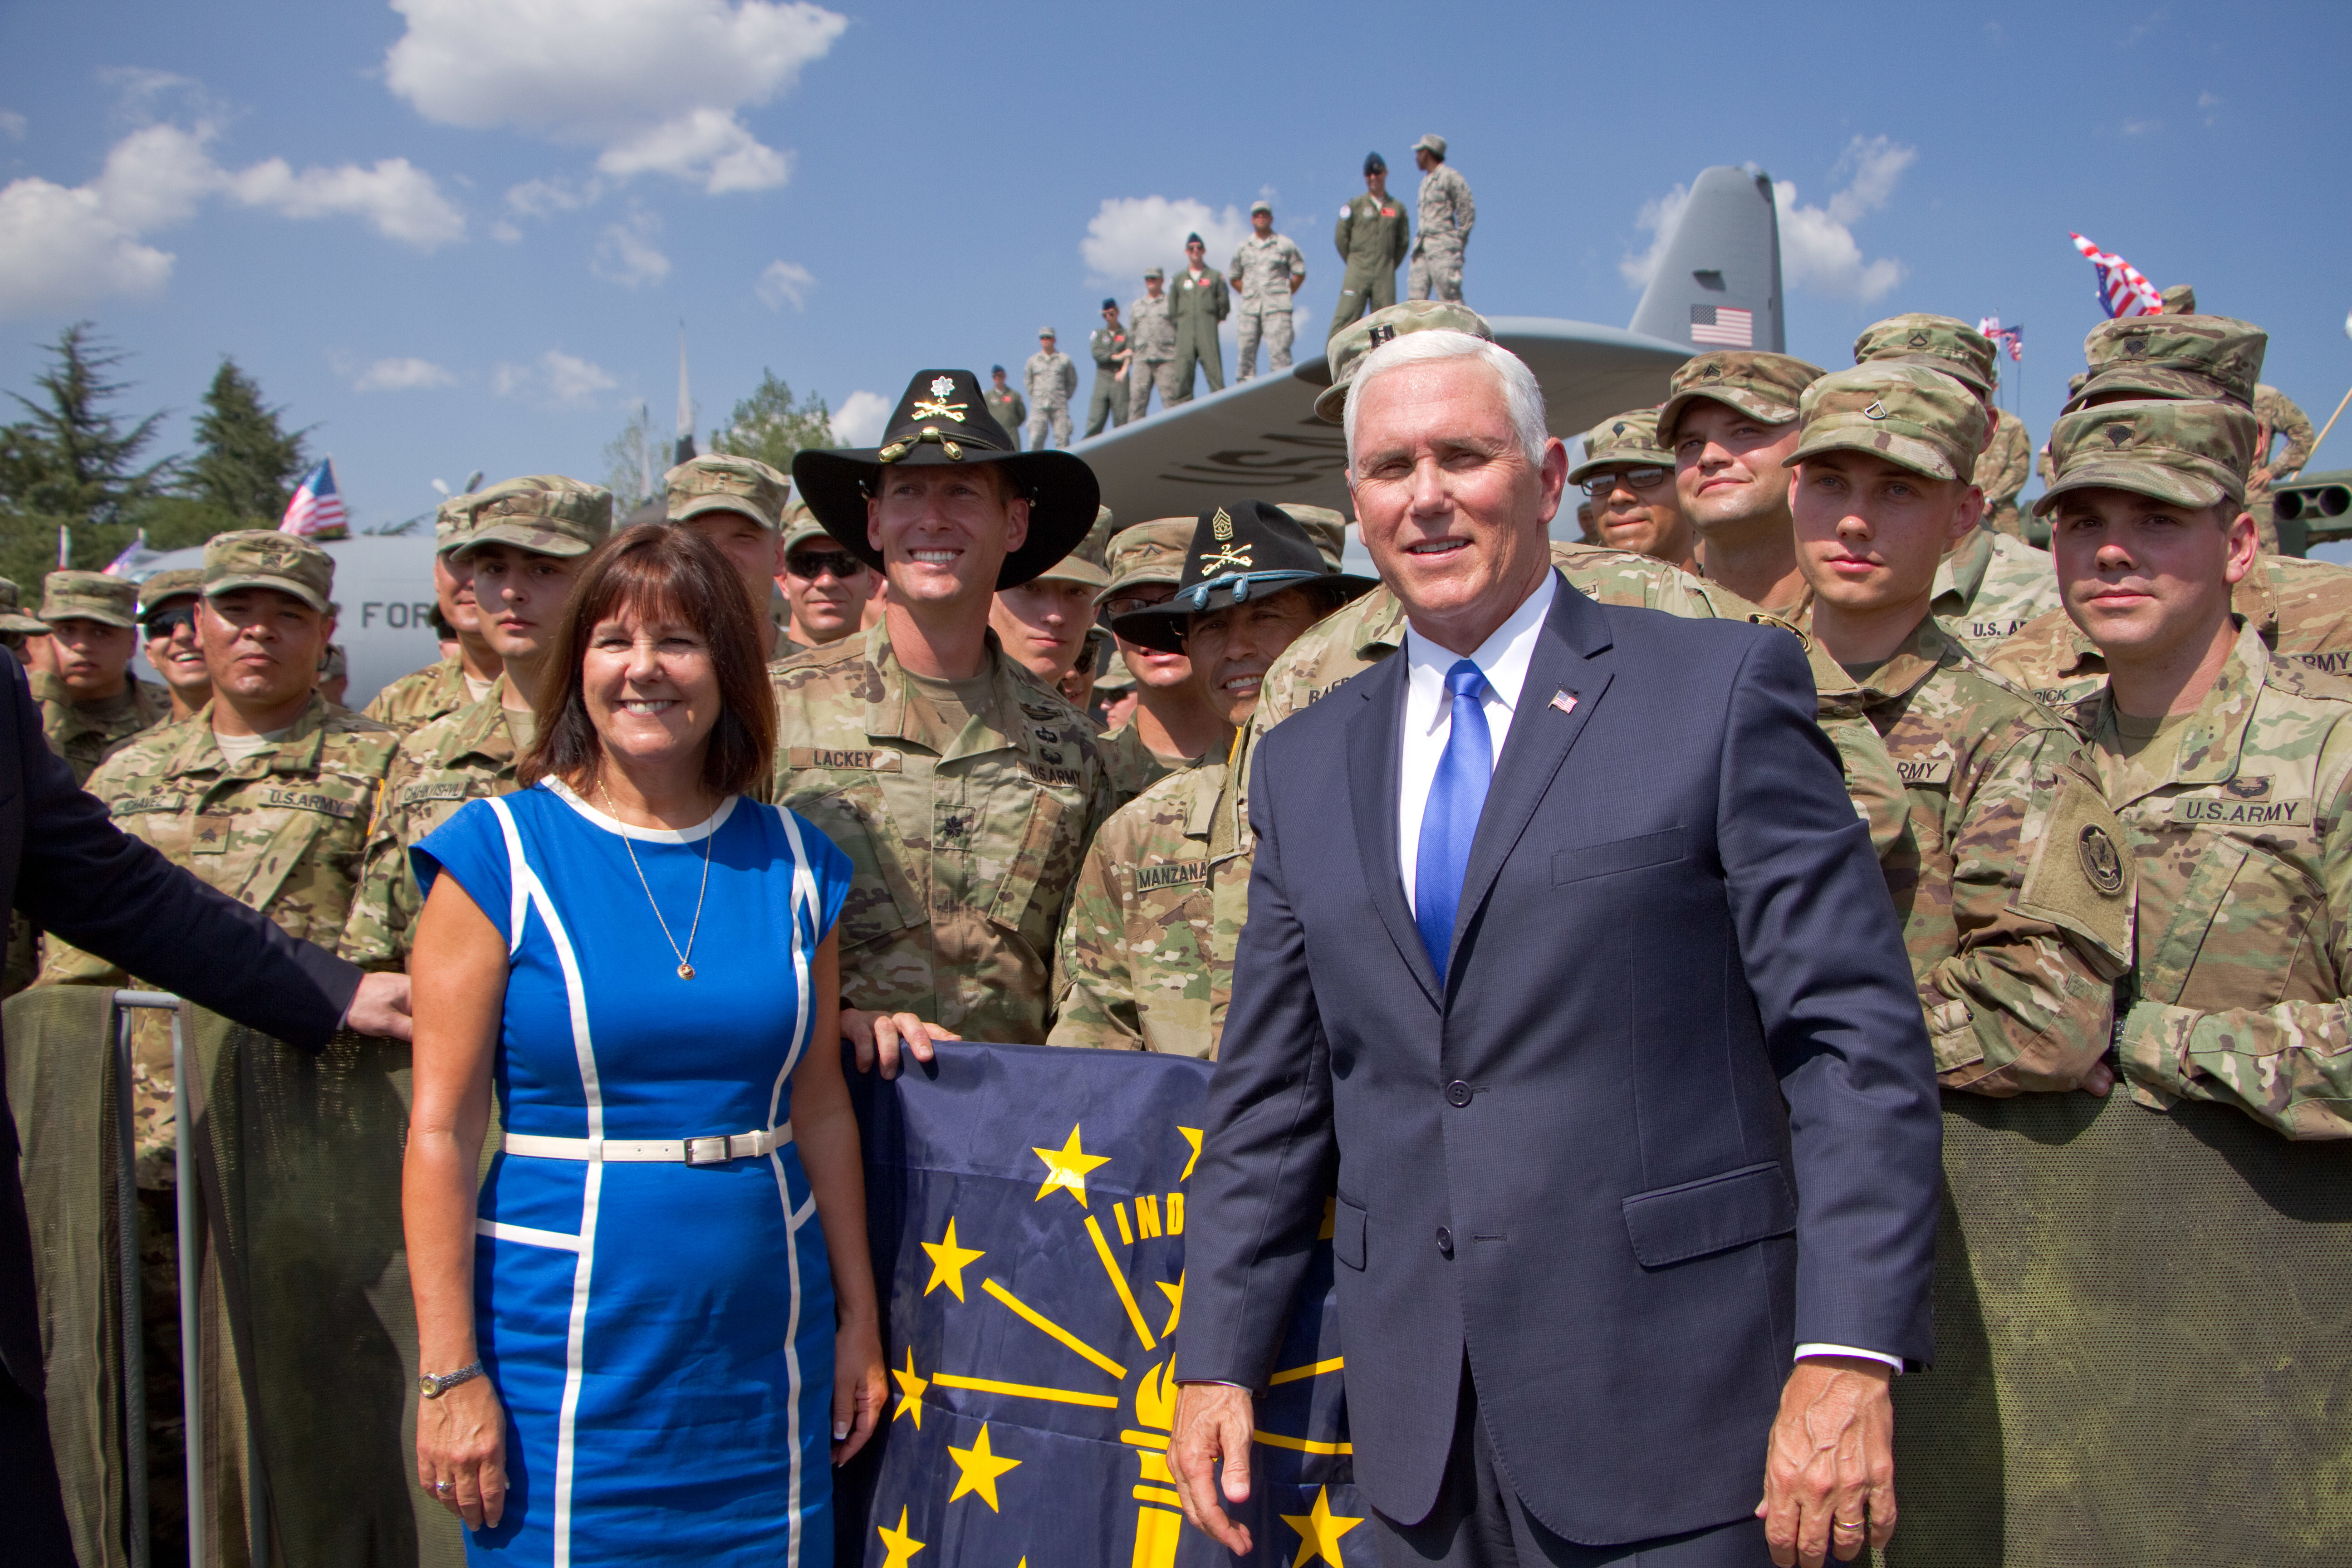 Vice President Mike Pence and wife Karen Pence pose for a photo with (in Cavalry Stetsons) Lt. Col. Adam Lackey, commander of 1st Squadron, 2d Cavalry Regiment and Command Sgt. Maj. Jerry Manzanares, senior enlisted advisor for 1SQDN and 2CR Soldiers Aug. 1, 2017 in Tbilisi,  Georgia during Noble Partner 17. Noble Partner 17 is a U.S. Army Europe-led exercise designed to support the training, progression and eventual certification of Georgia's second light infantry company's contribution to the NATO Response Force. The training will take place at the Vaziani Training Area.